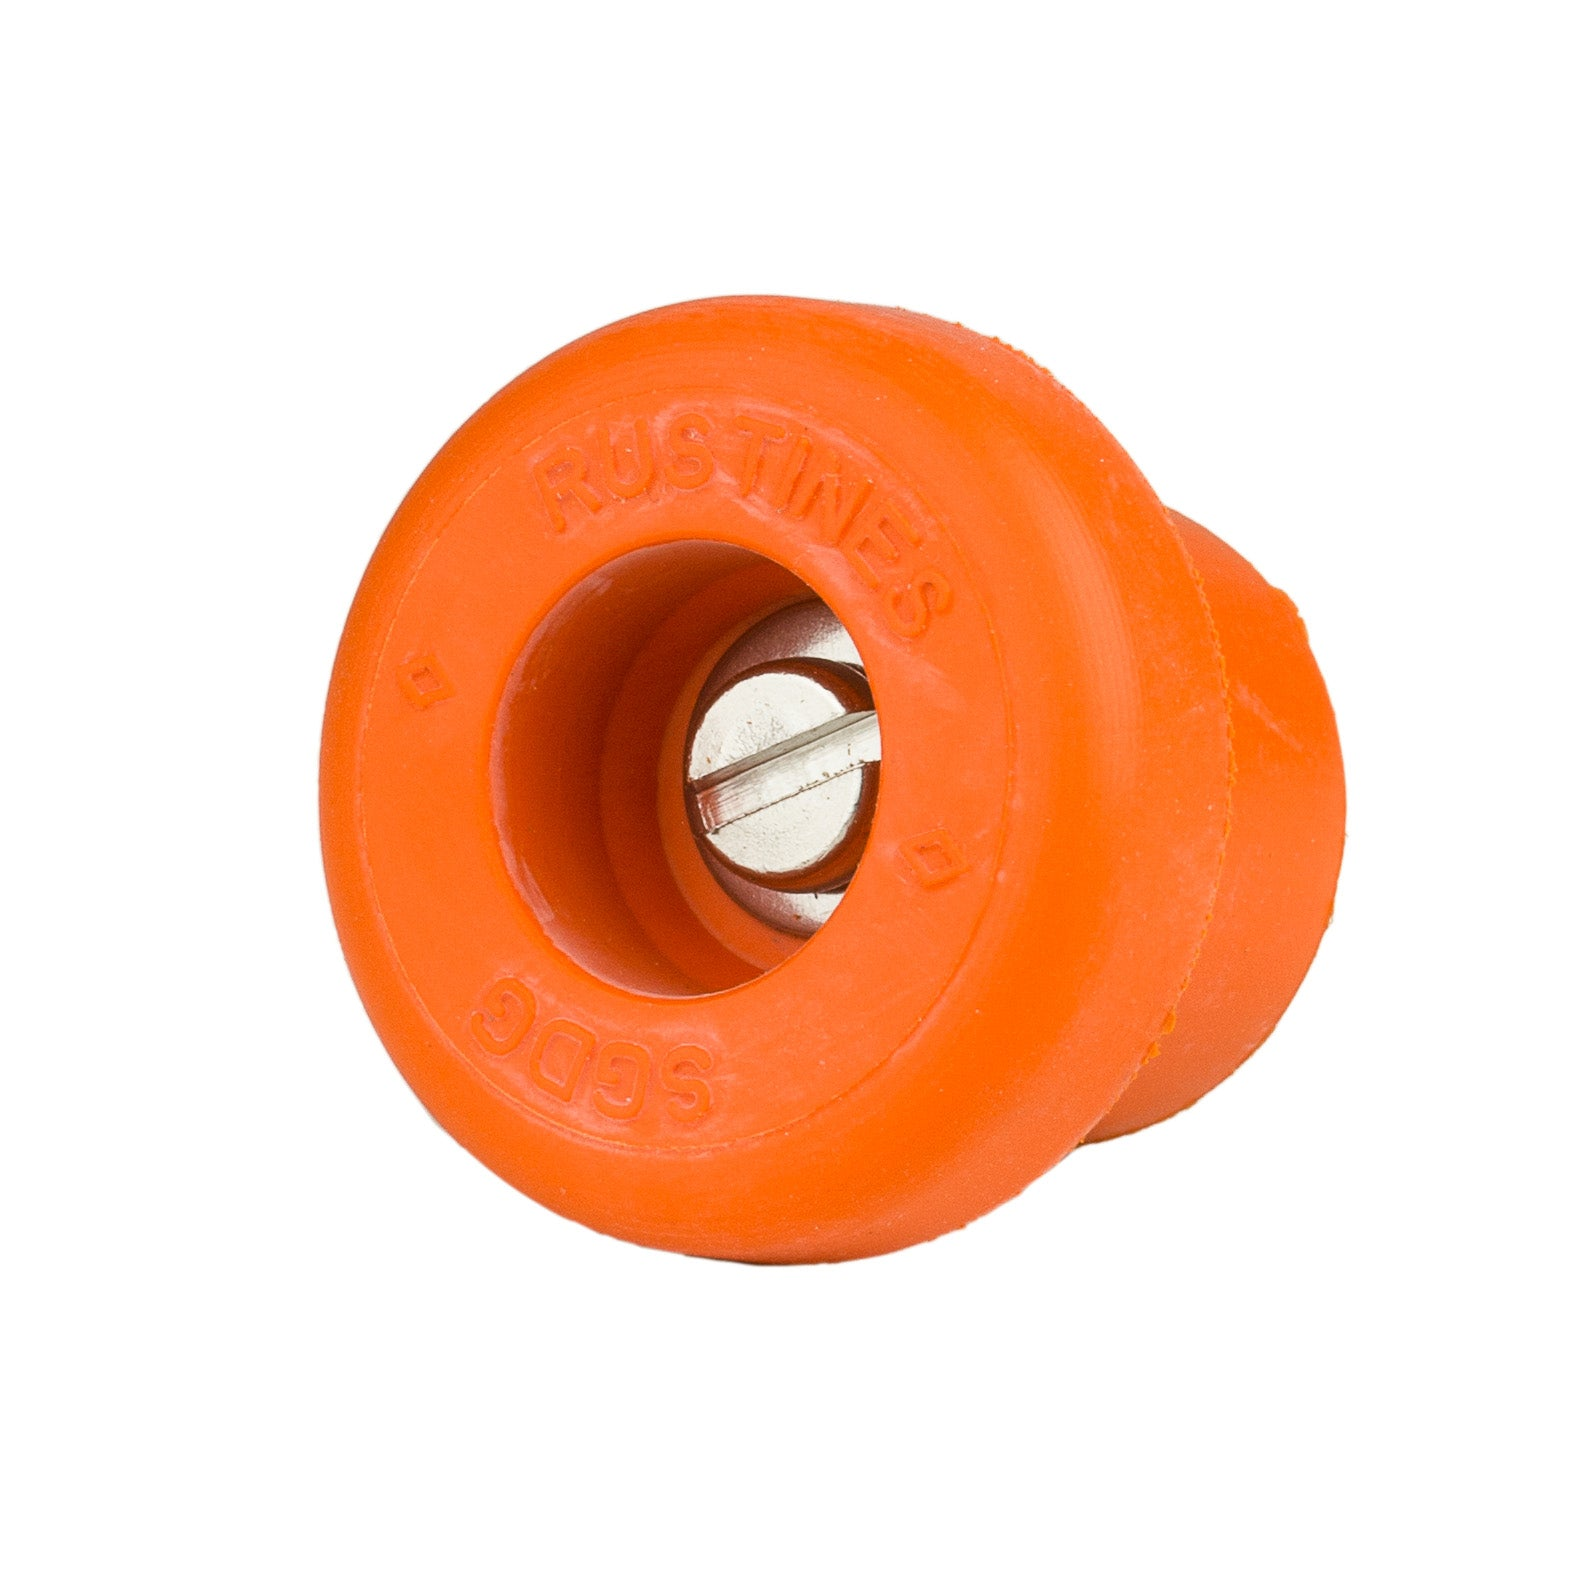 French Rubber Bar Plugs